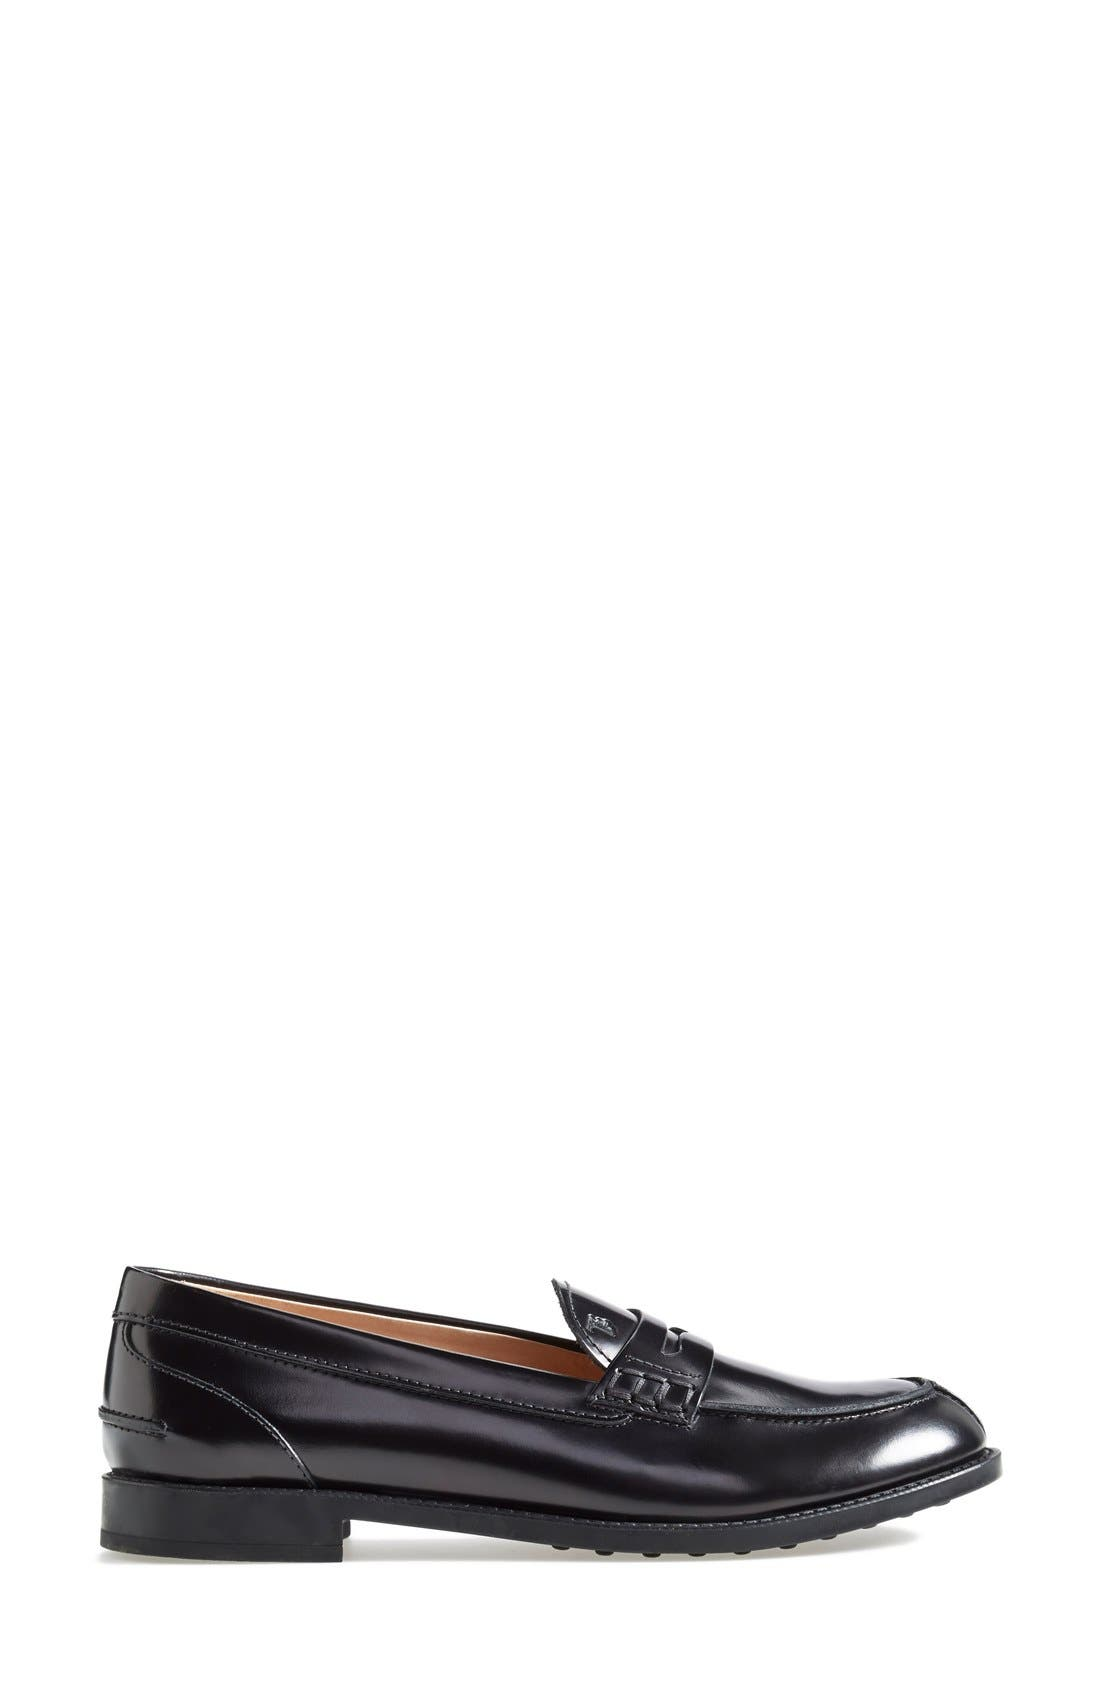 Alternate Image 4  - Tod's 'Classic' Leather Loafer (Women)